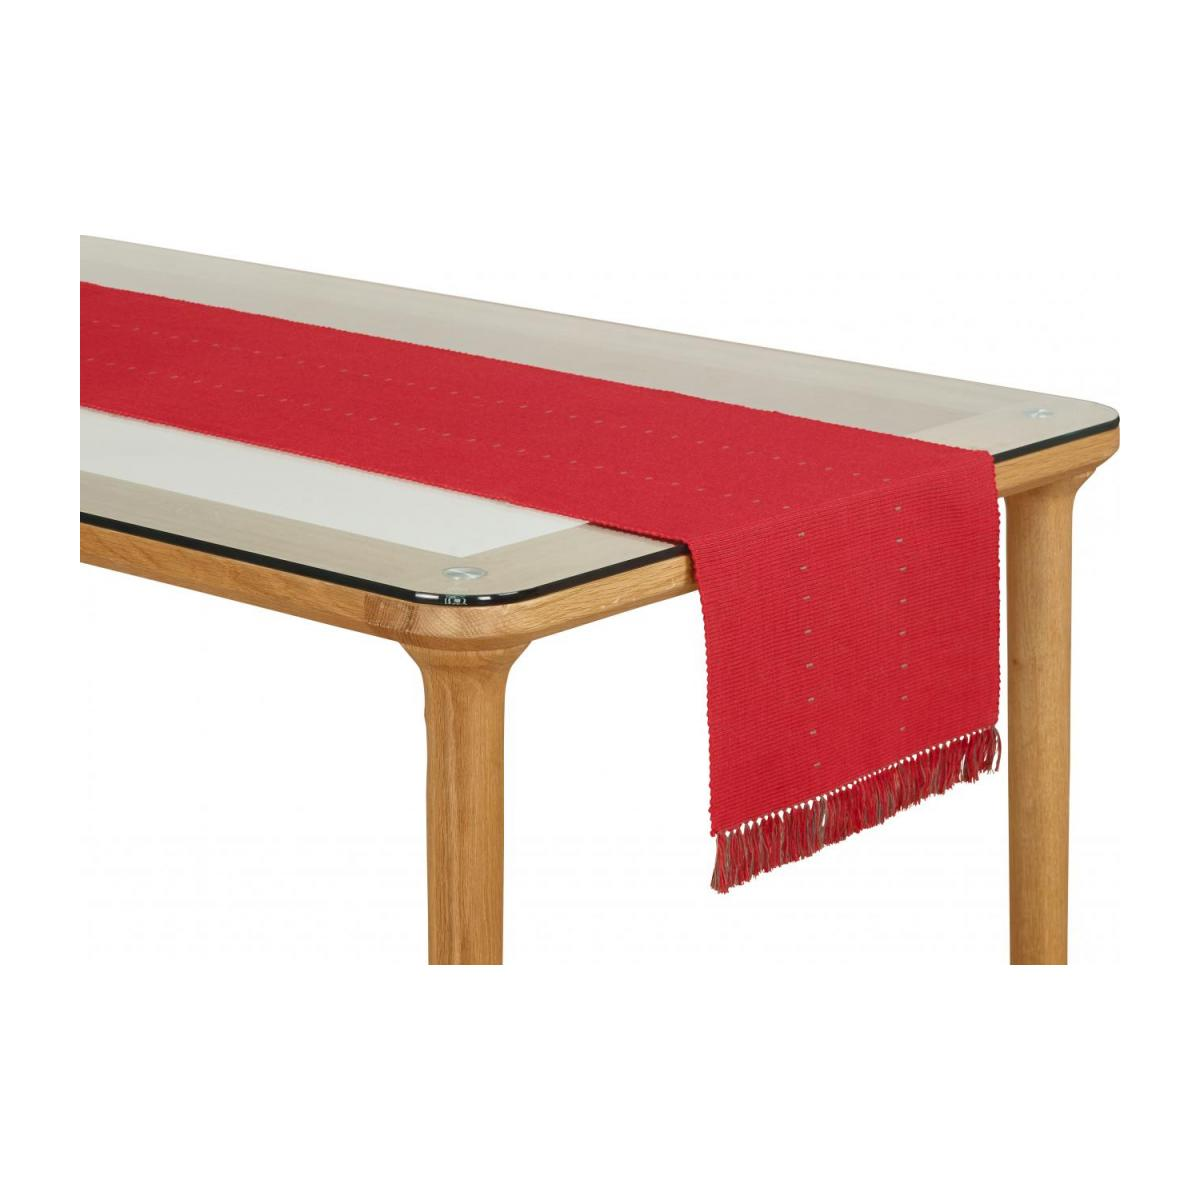 Lot de 2 travers de table en coton rouge n°1